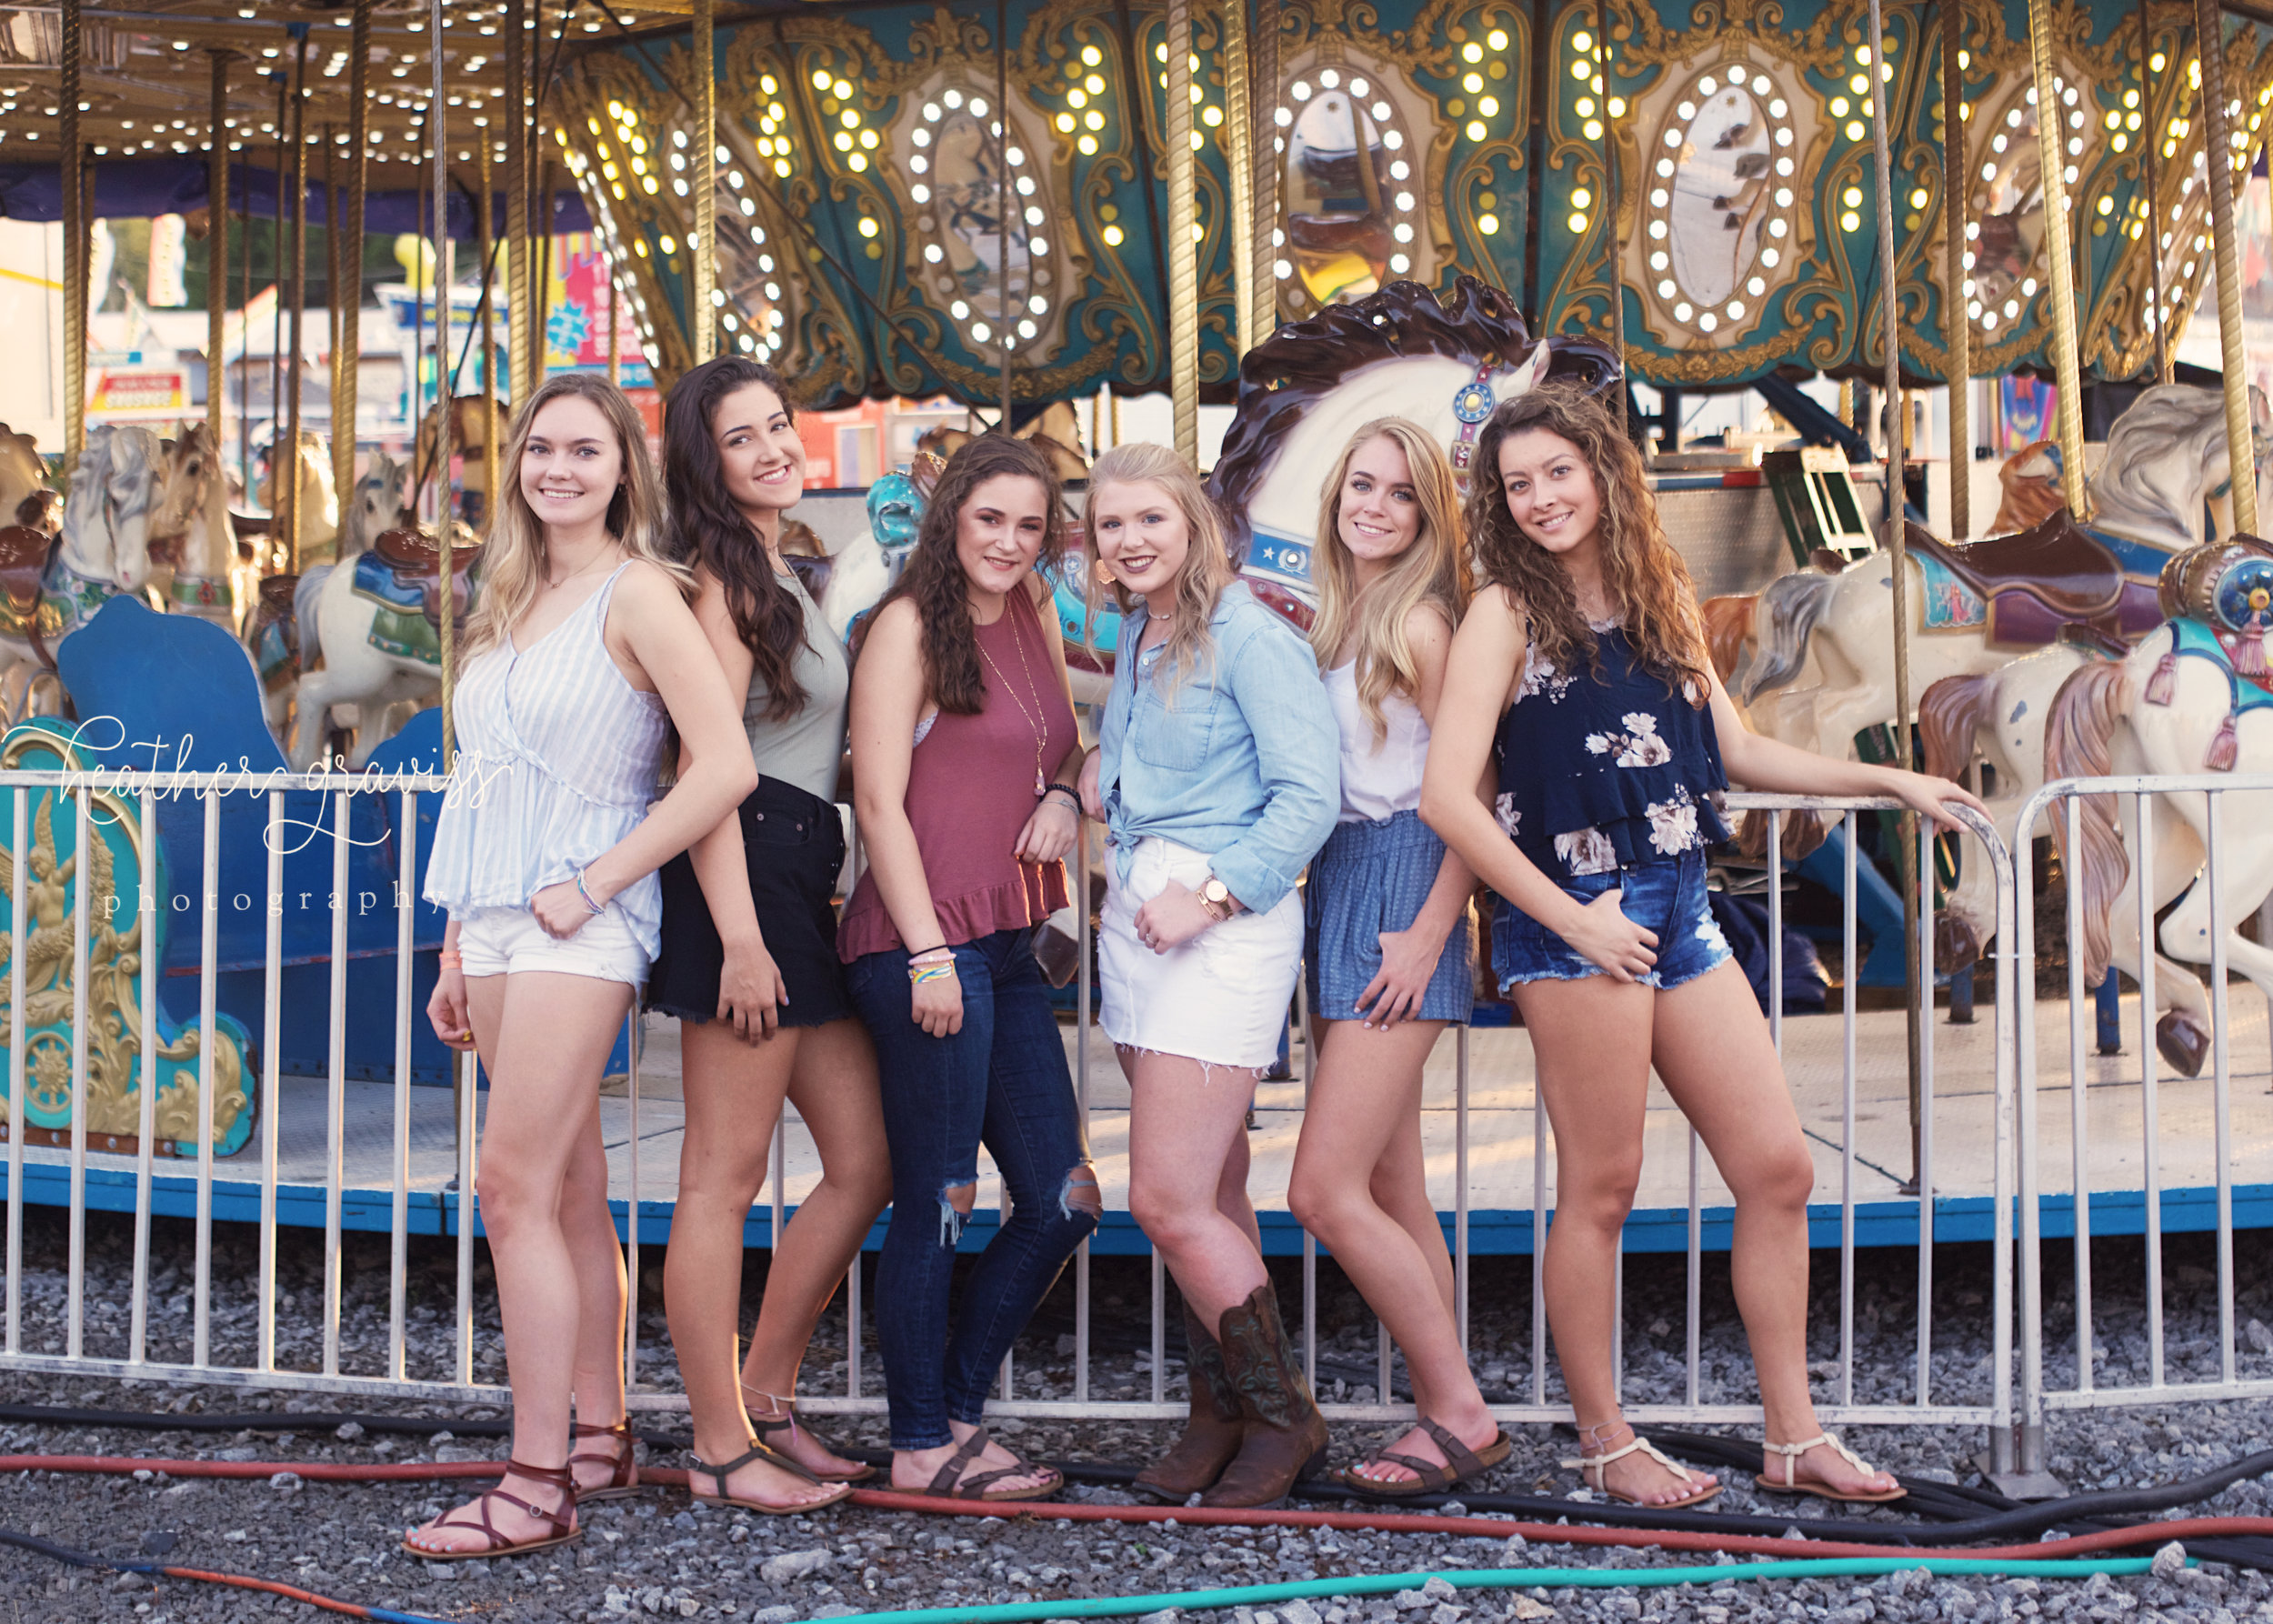 carousel-beauties.jpg